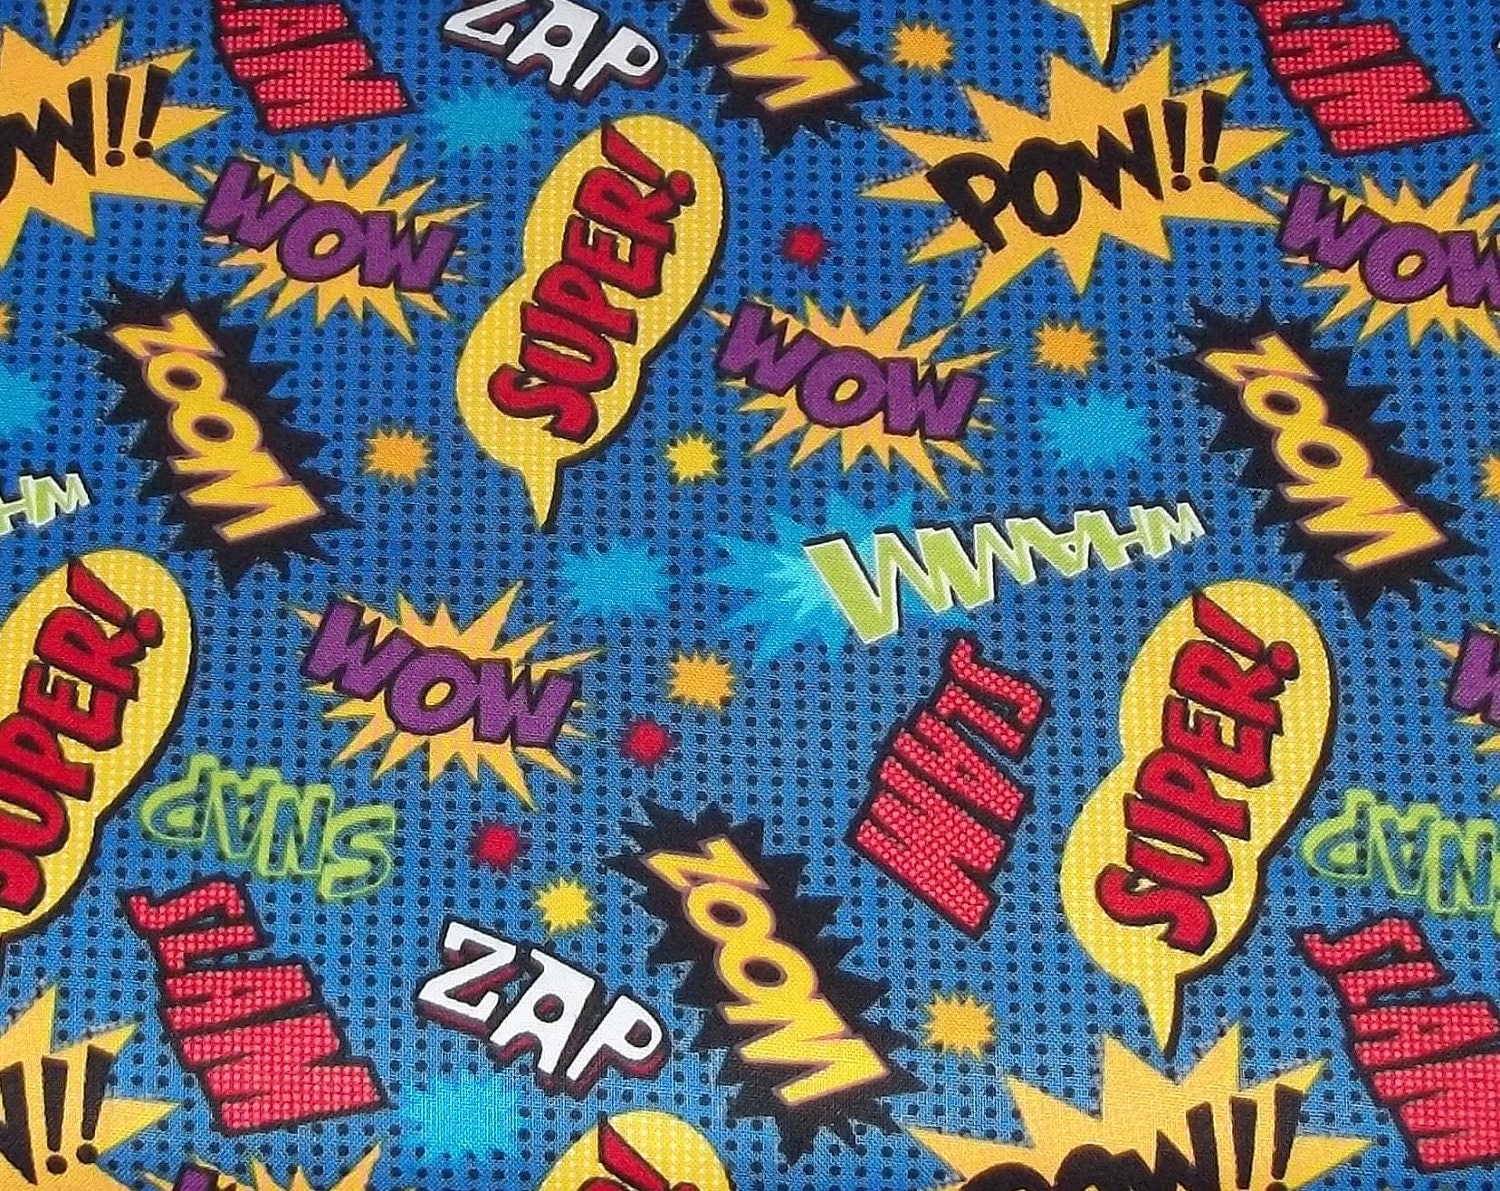 Super Hero Action Words Fabric By The Yard